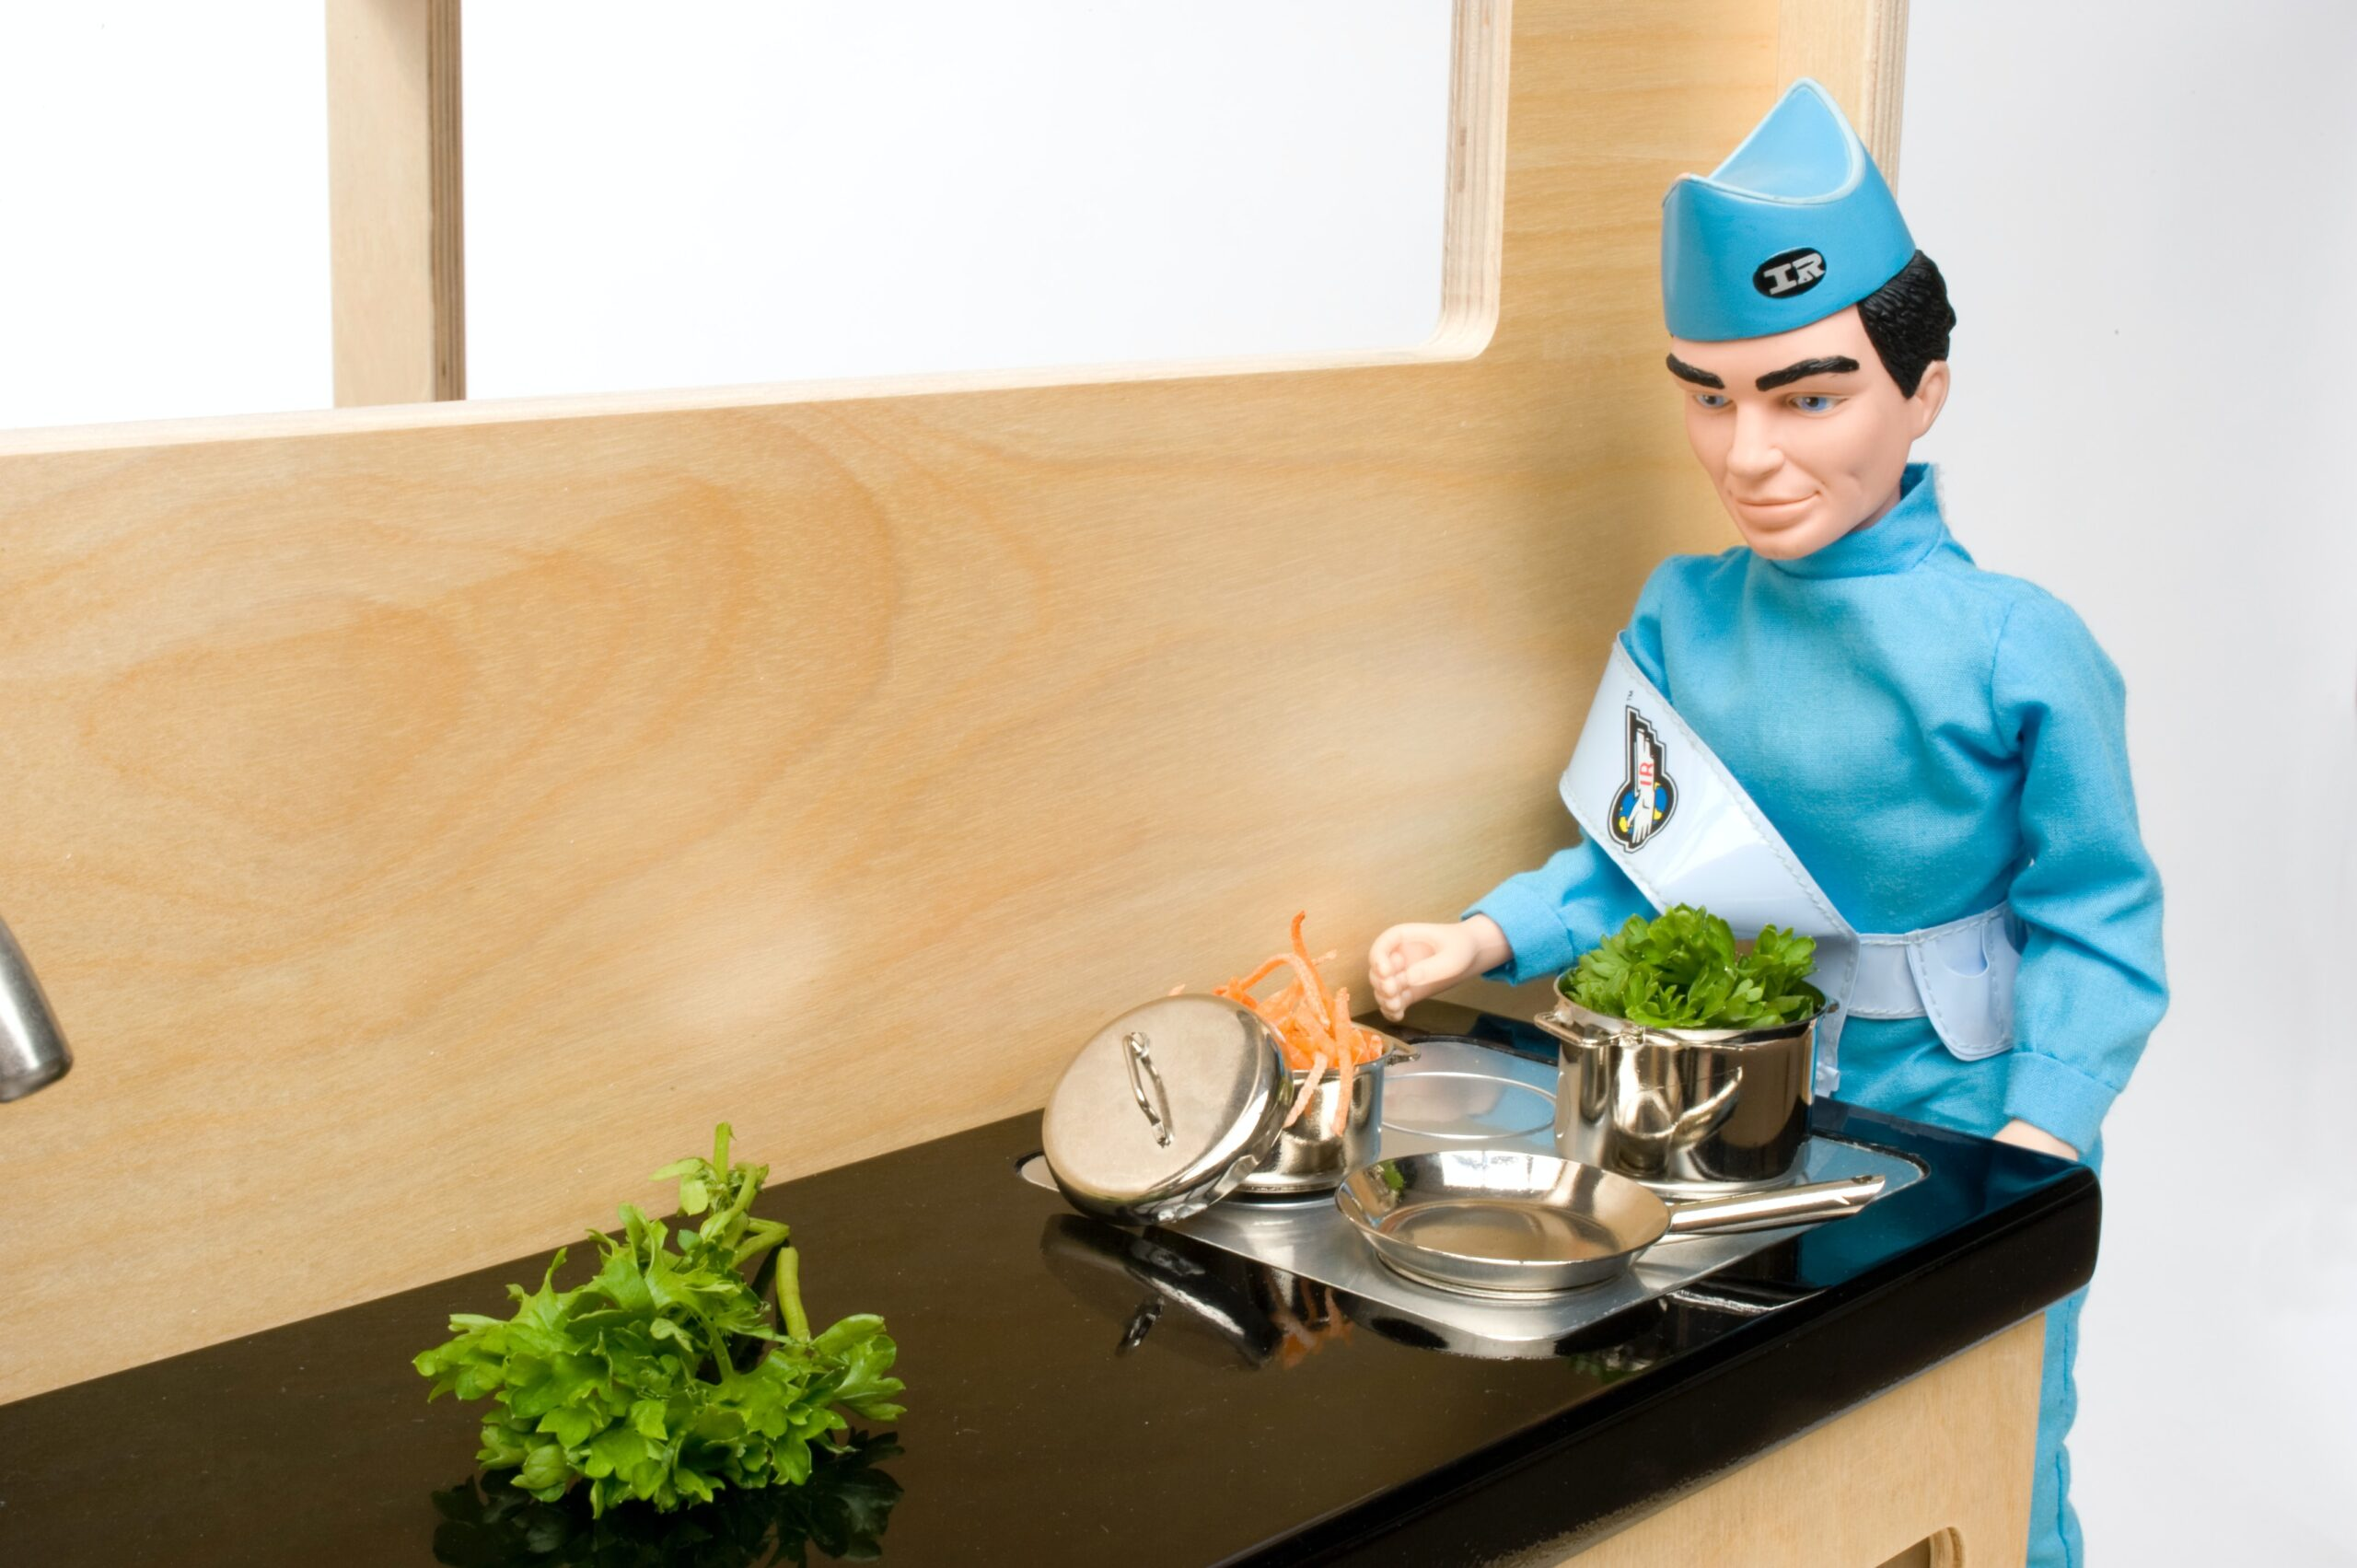 A Thunderbirds character standing in a toy kitchen